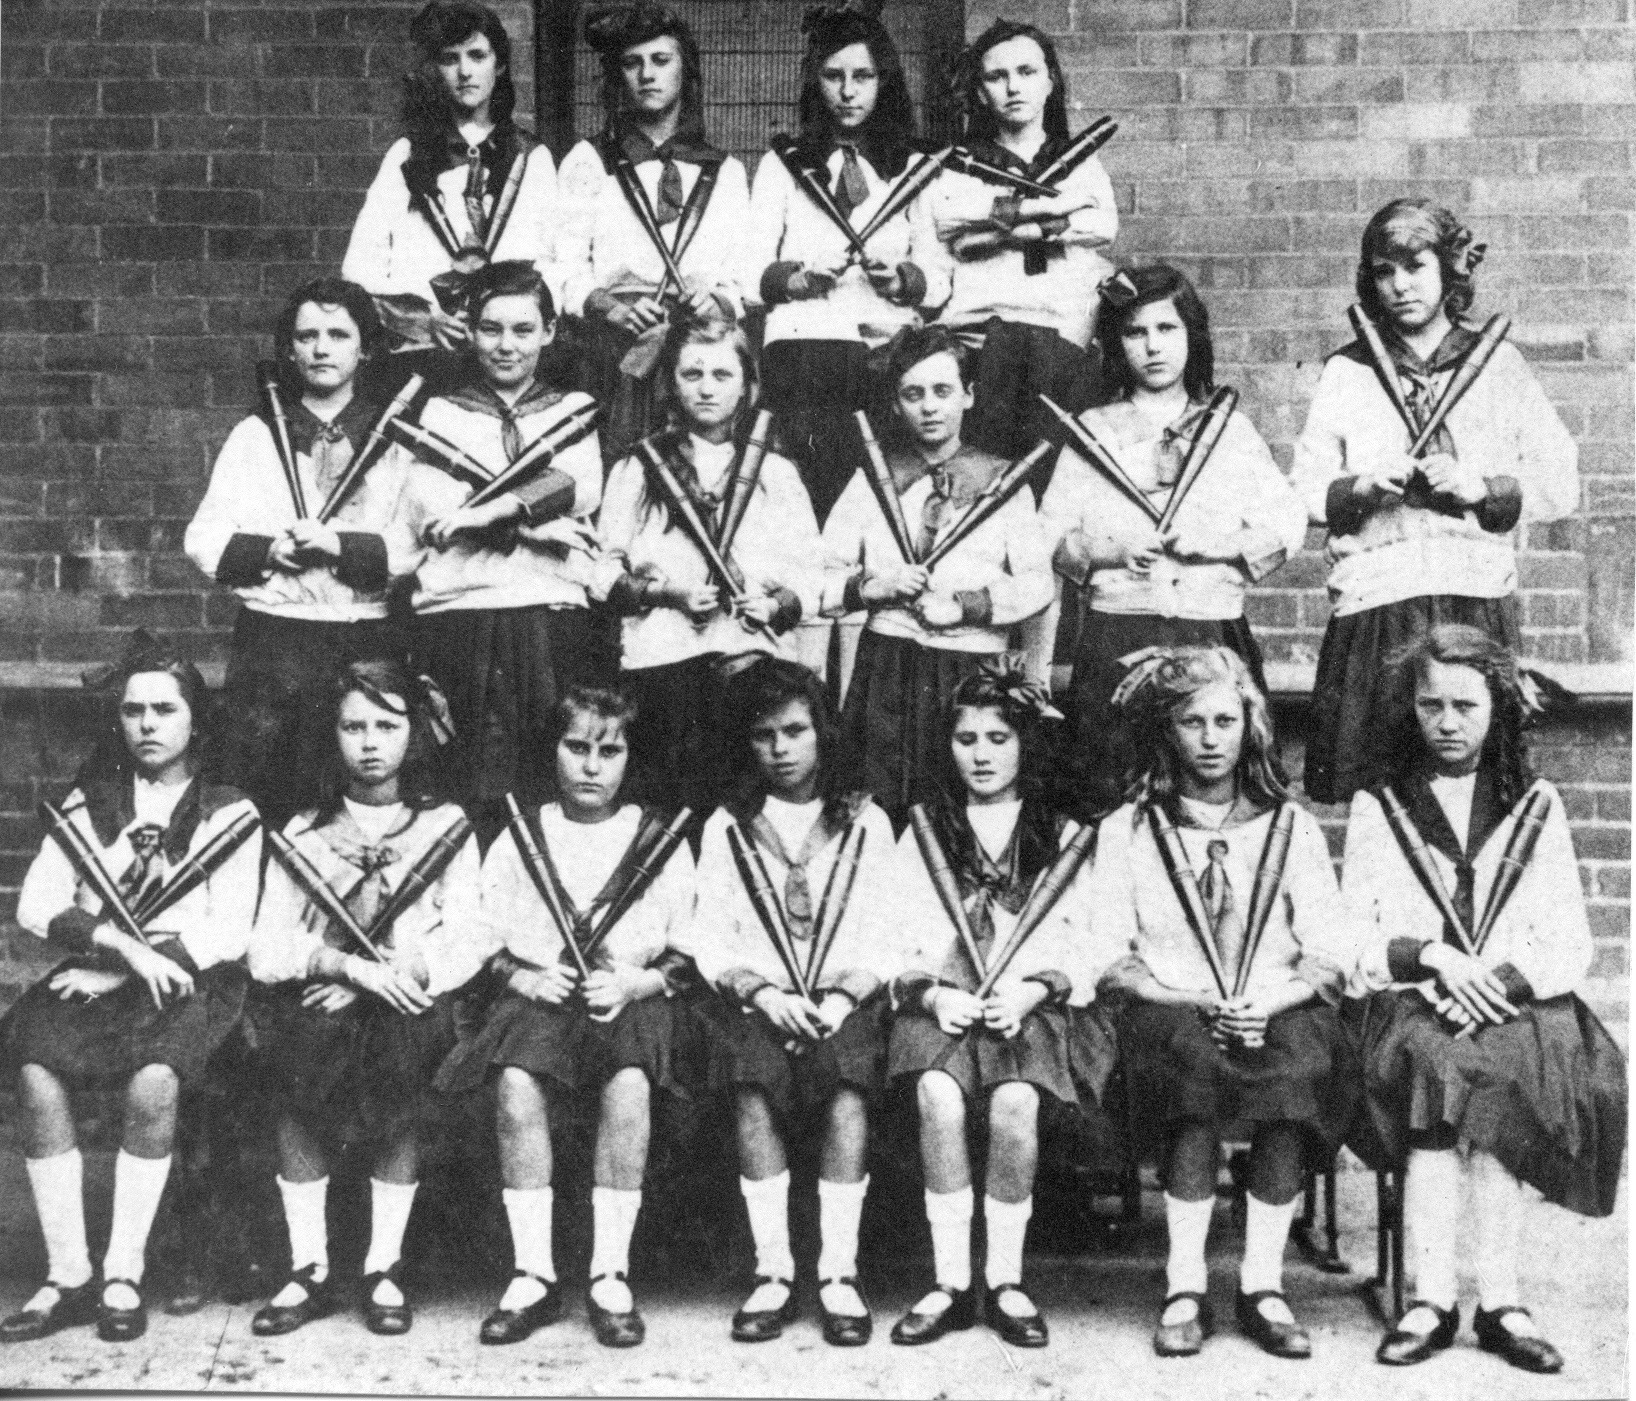 Students at St James Catholic Primary School Forrest Lodge circa 1922 - 1923